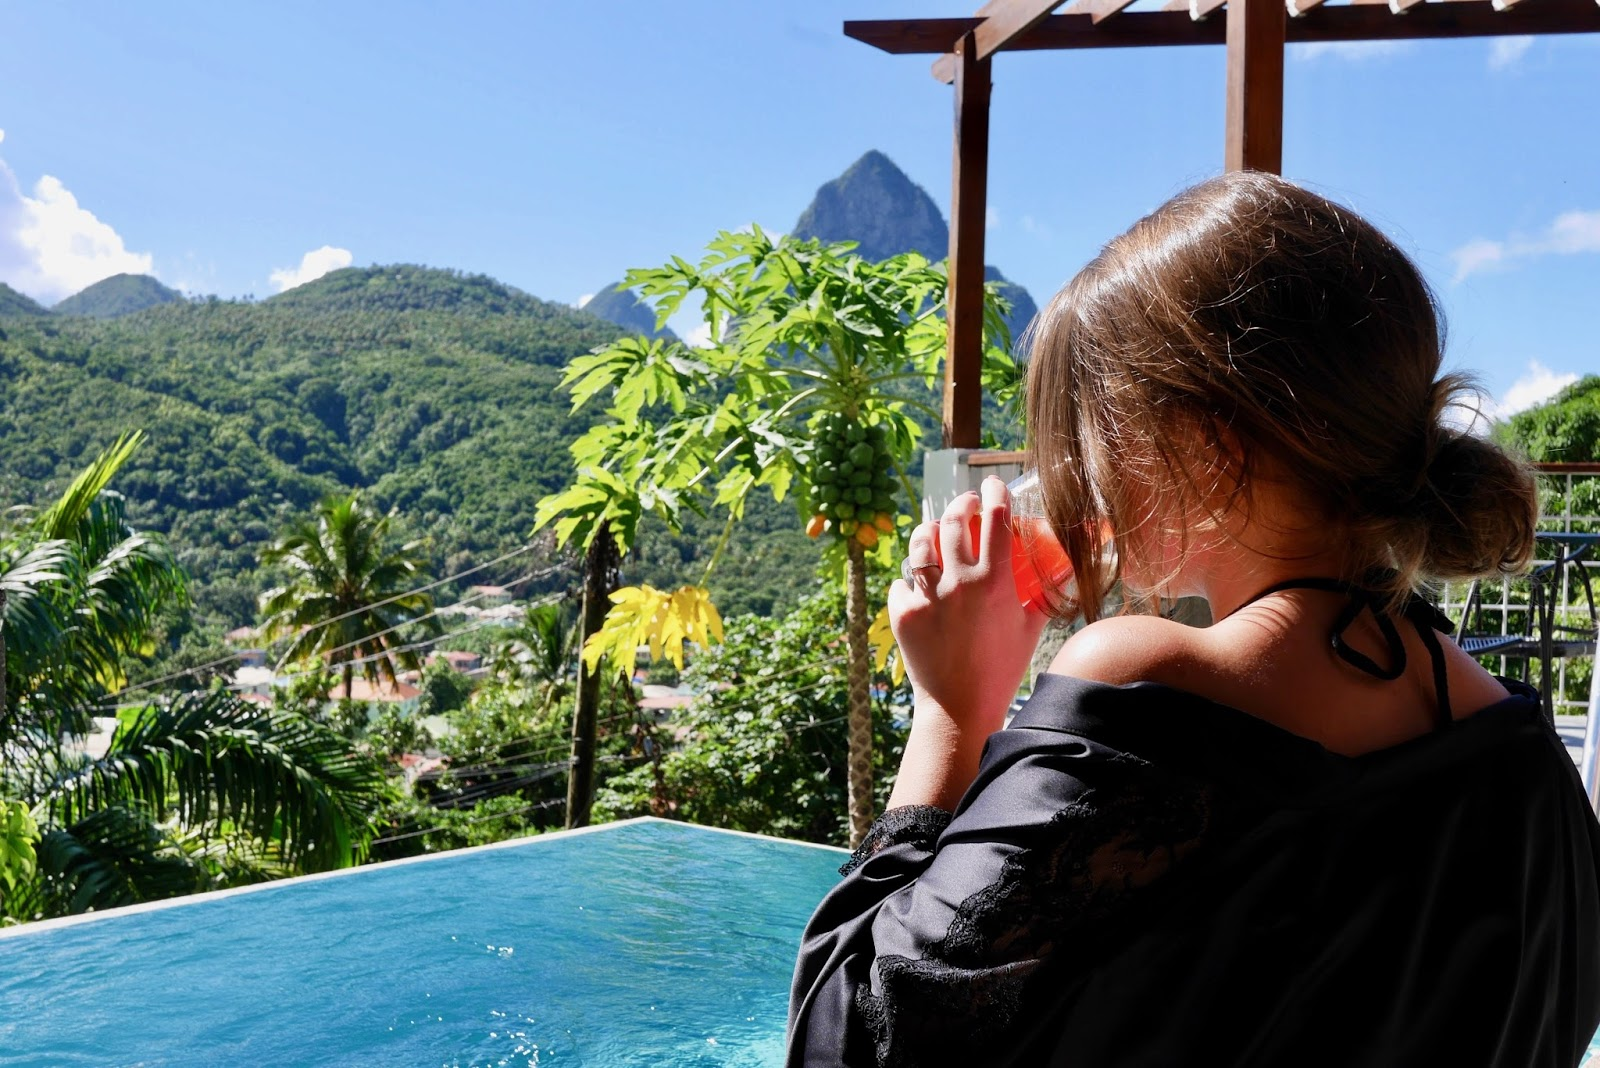 The best airbnb in the world looking onto the Piton Mountains, Soufrière, Saint Lucia, review by www.CalMcTravels.com, Cal McTravels